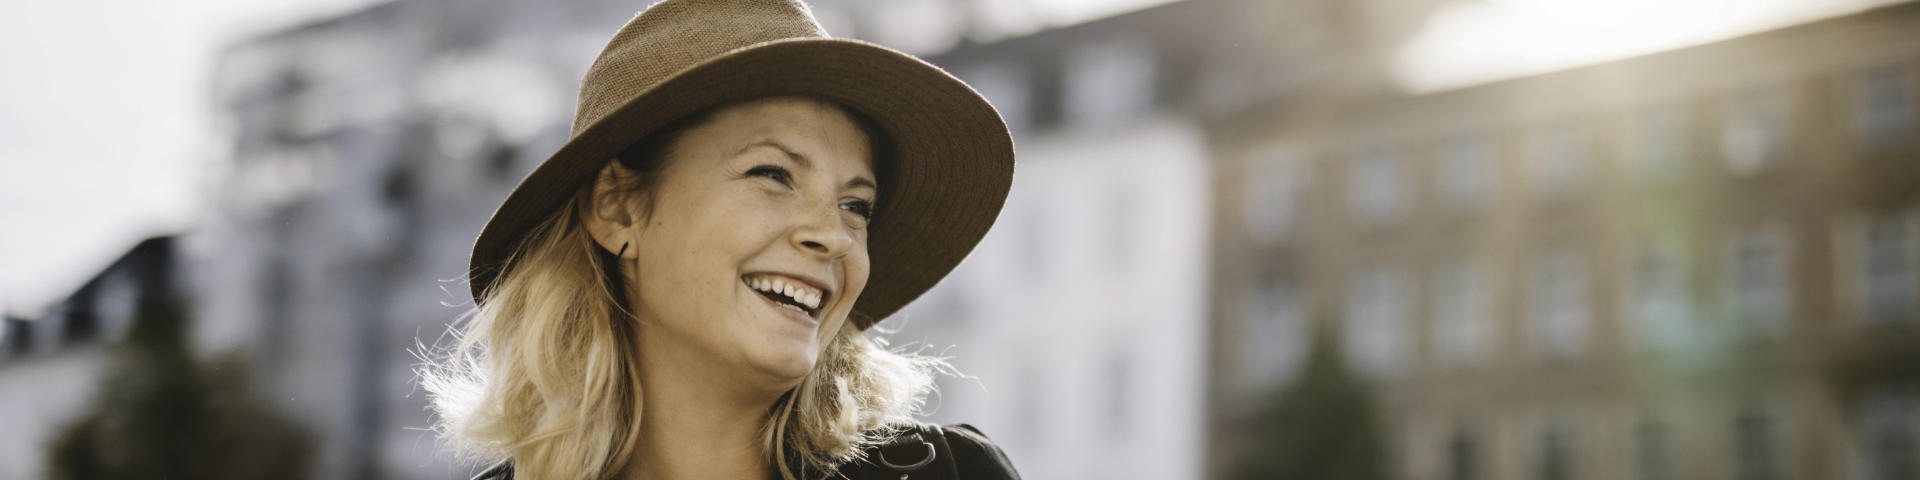 Cheerful broadly smiling woman wearing a hat.